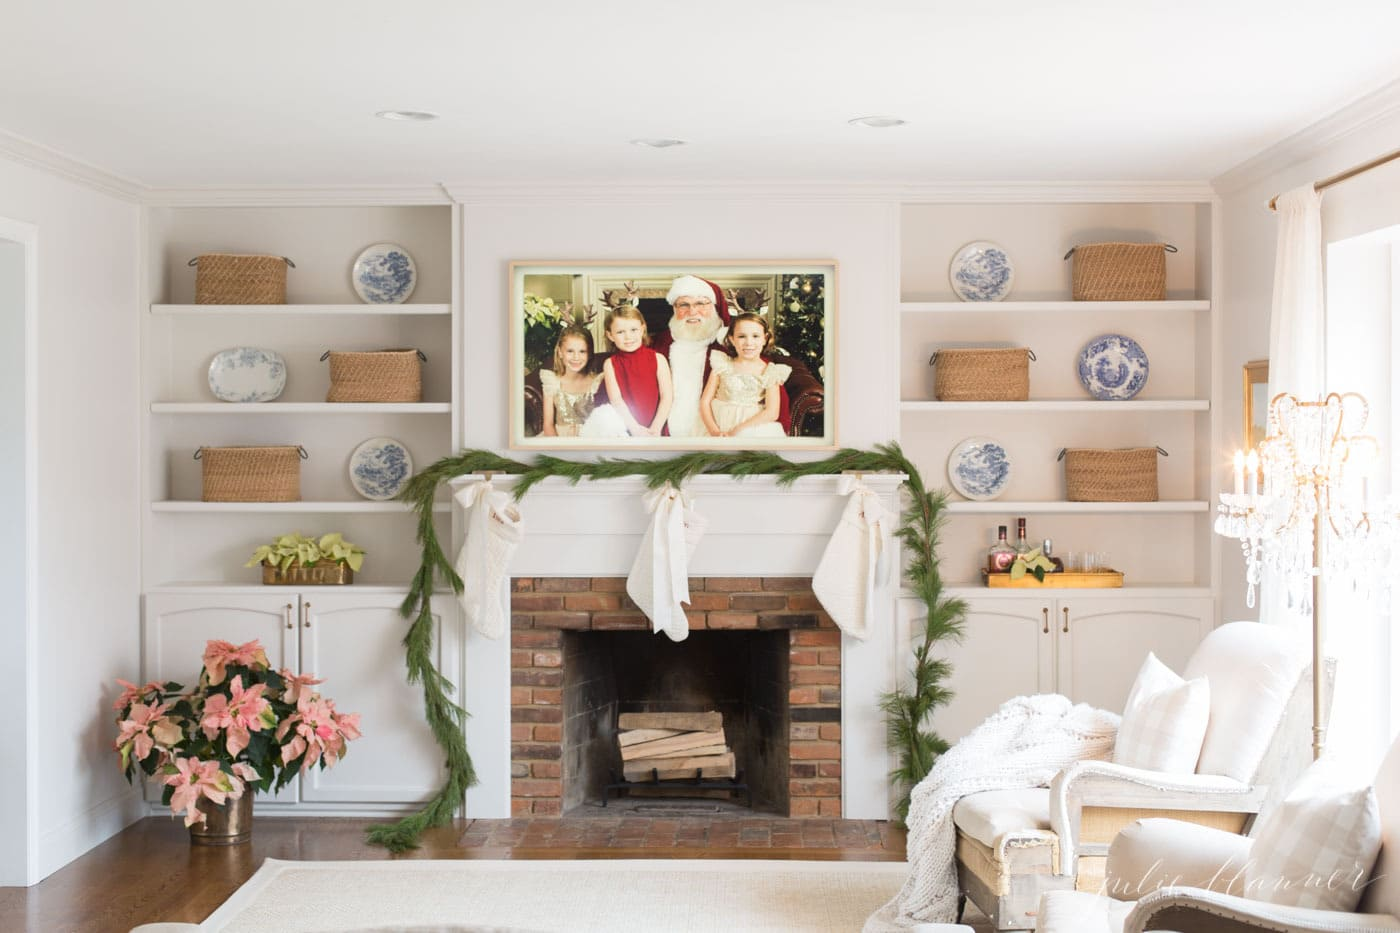 A picture frame tv on the wall over a traditional fireplace decorated for Christmas.